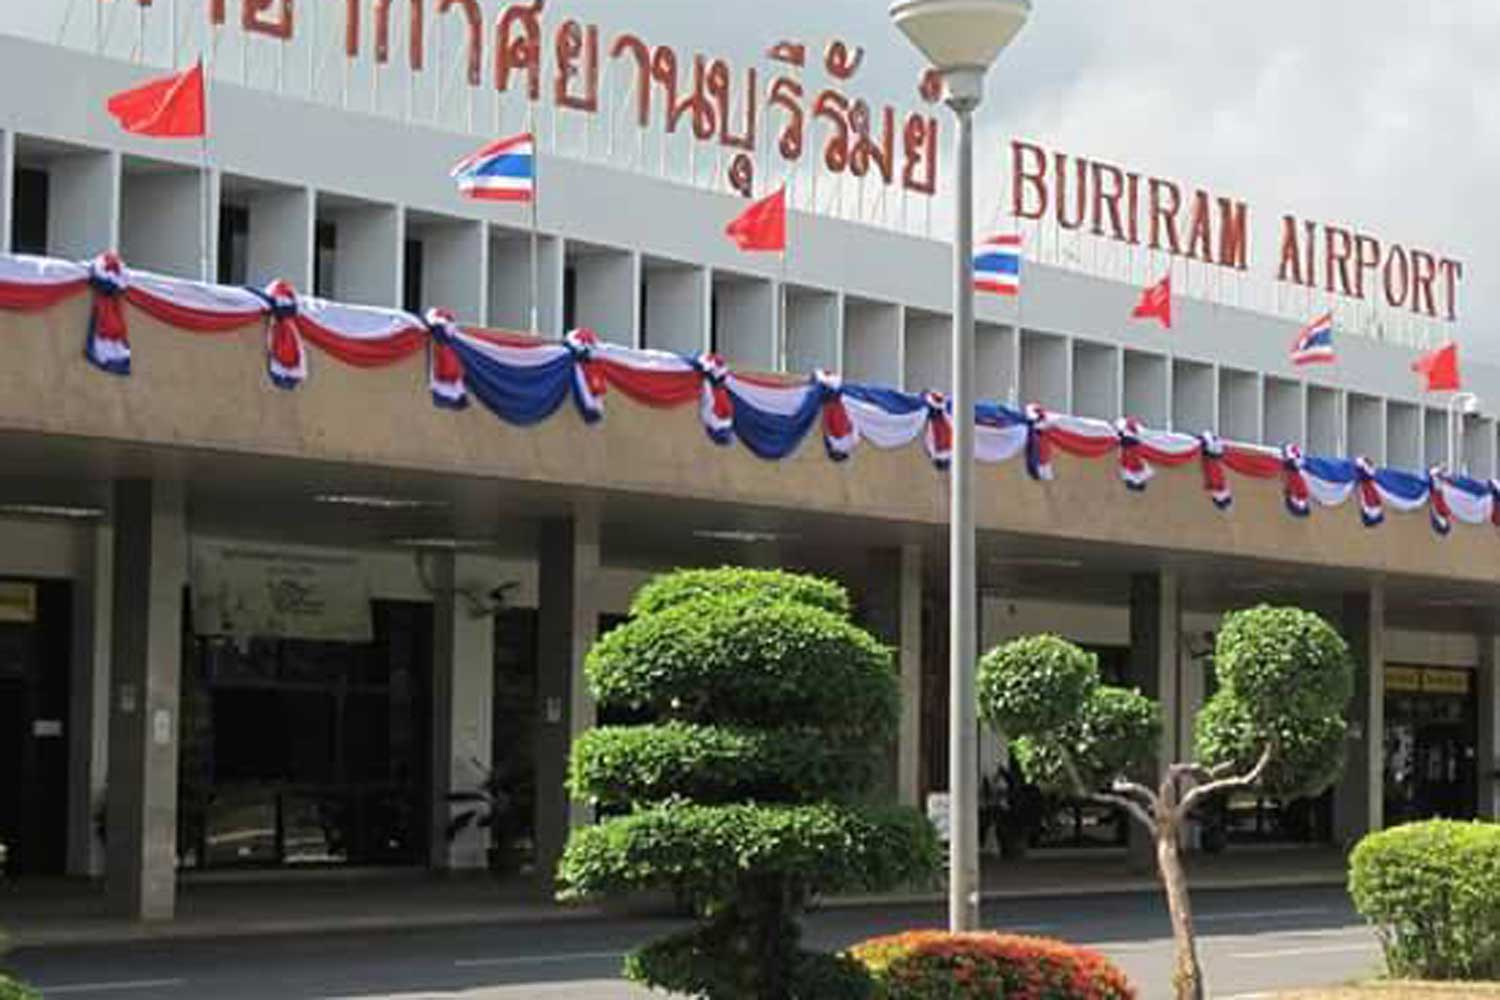 Buriram airport is a new inclusion in the Airports of Thailand's takeover and upgrade plans. (Photo from Buriram airport Facebook account)